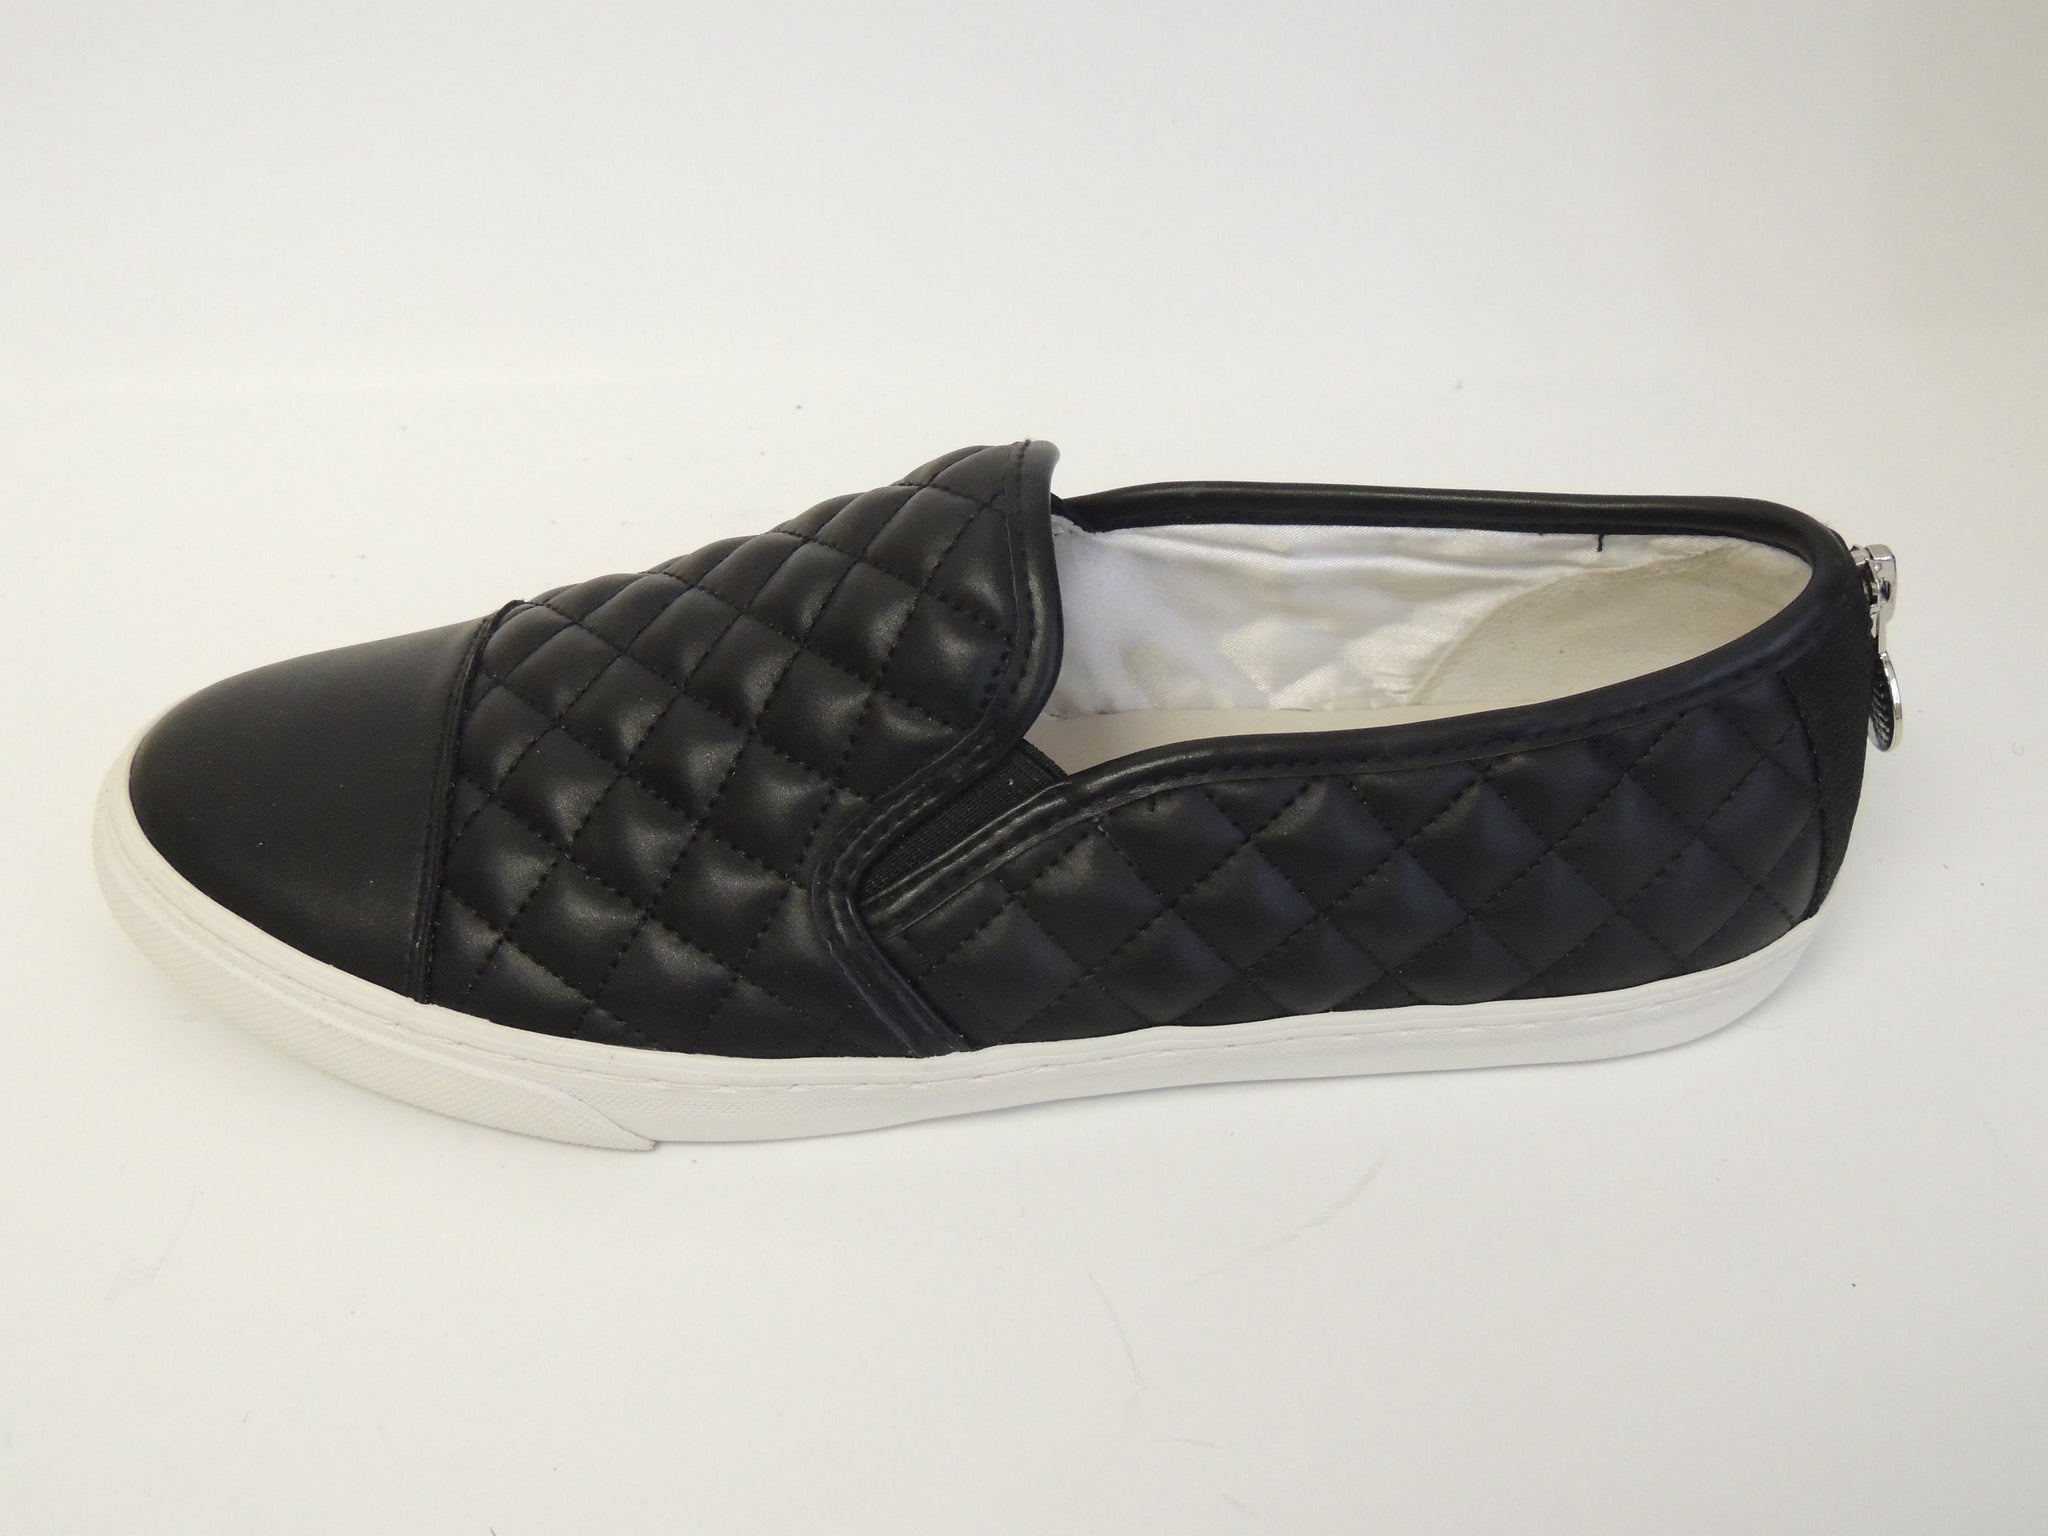 a37a026614 Geox D New Club Slip-On Sneakers Women's Shoes, Black ( Size 10 US ...